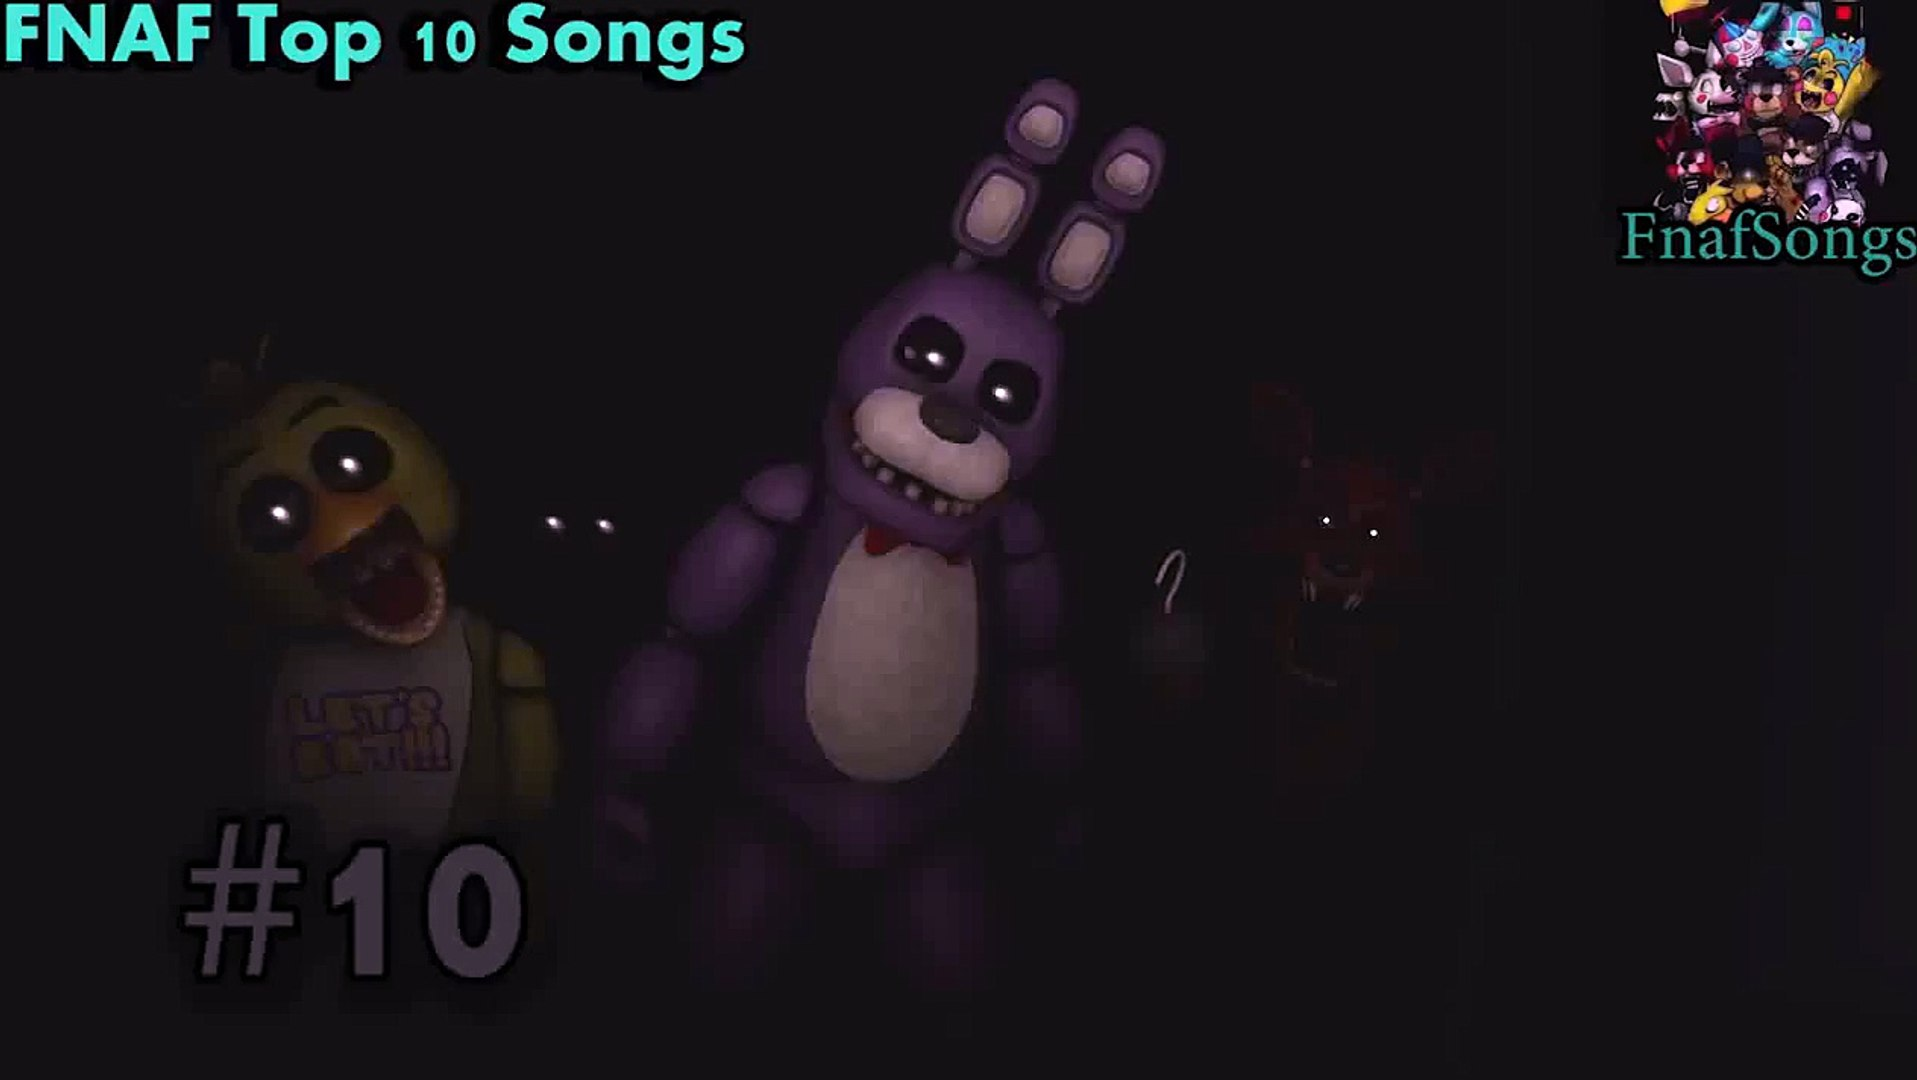 fnaf song Top 10 FNAF songs